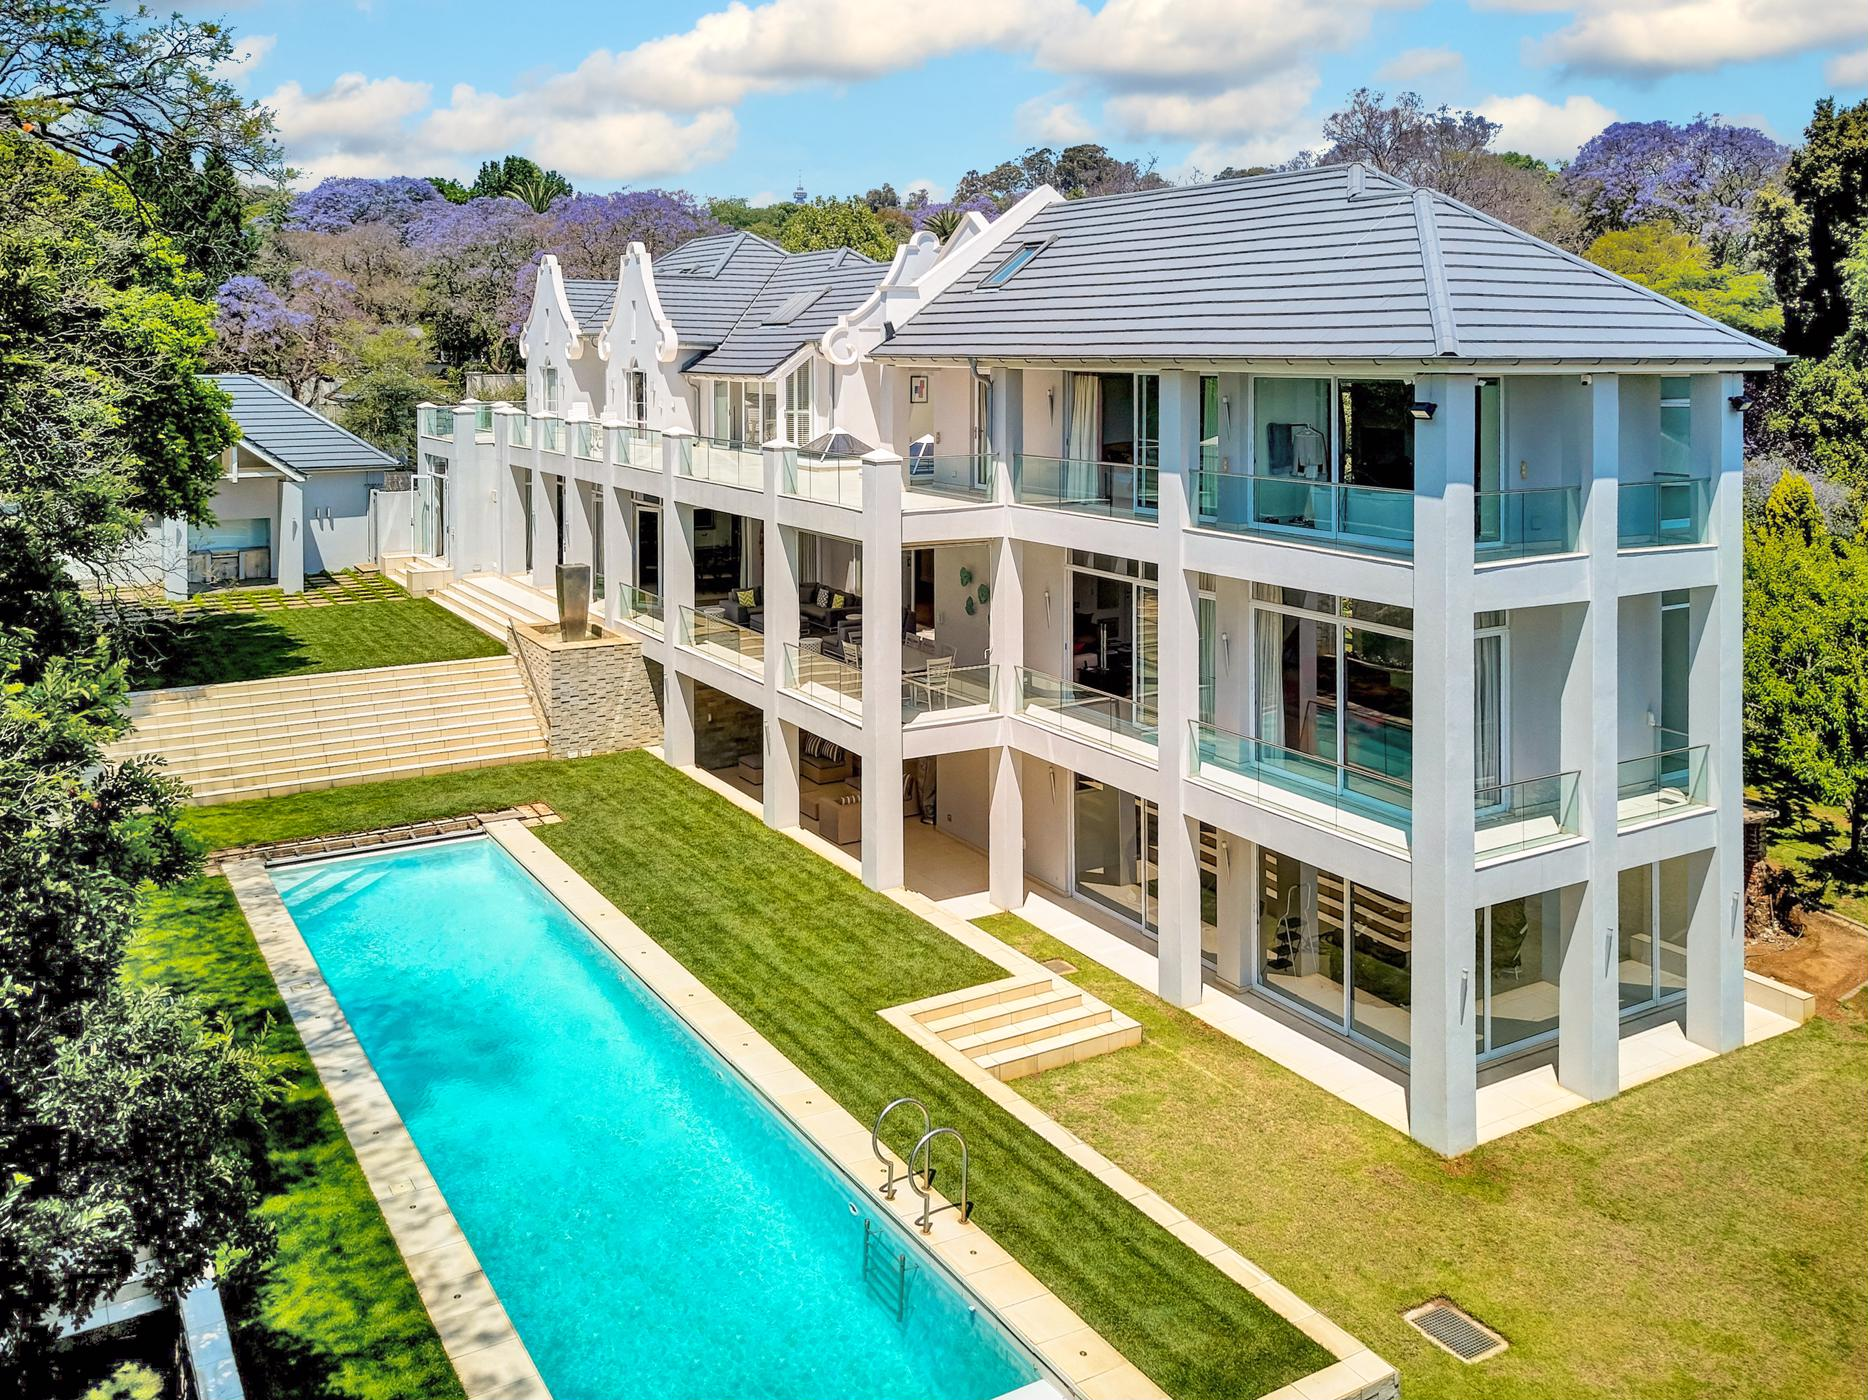 5 Bedroom House For Sale | Westcliff (Johannesburg ...